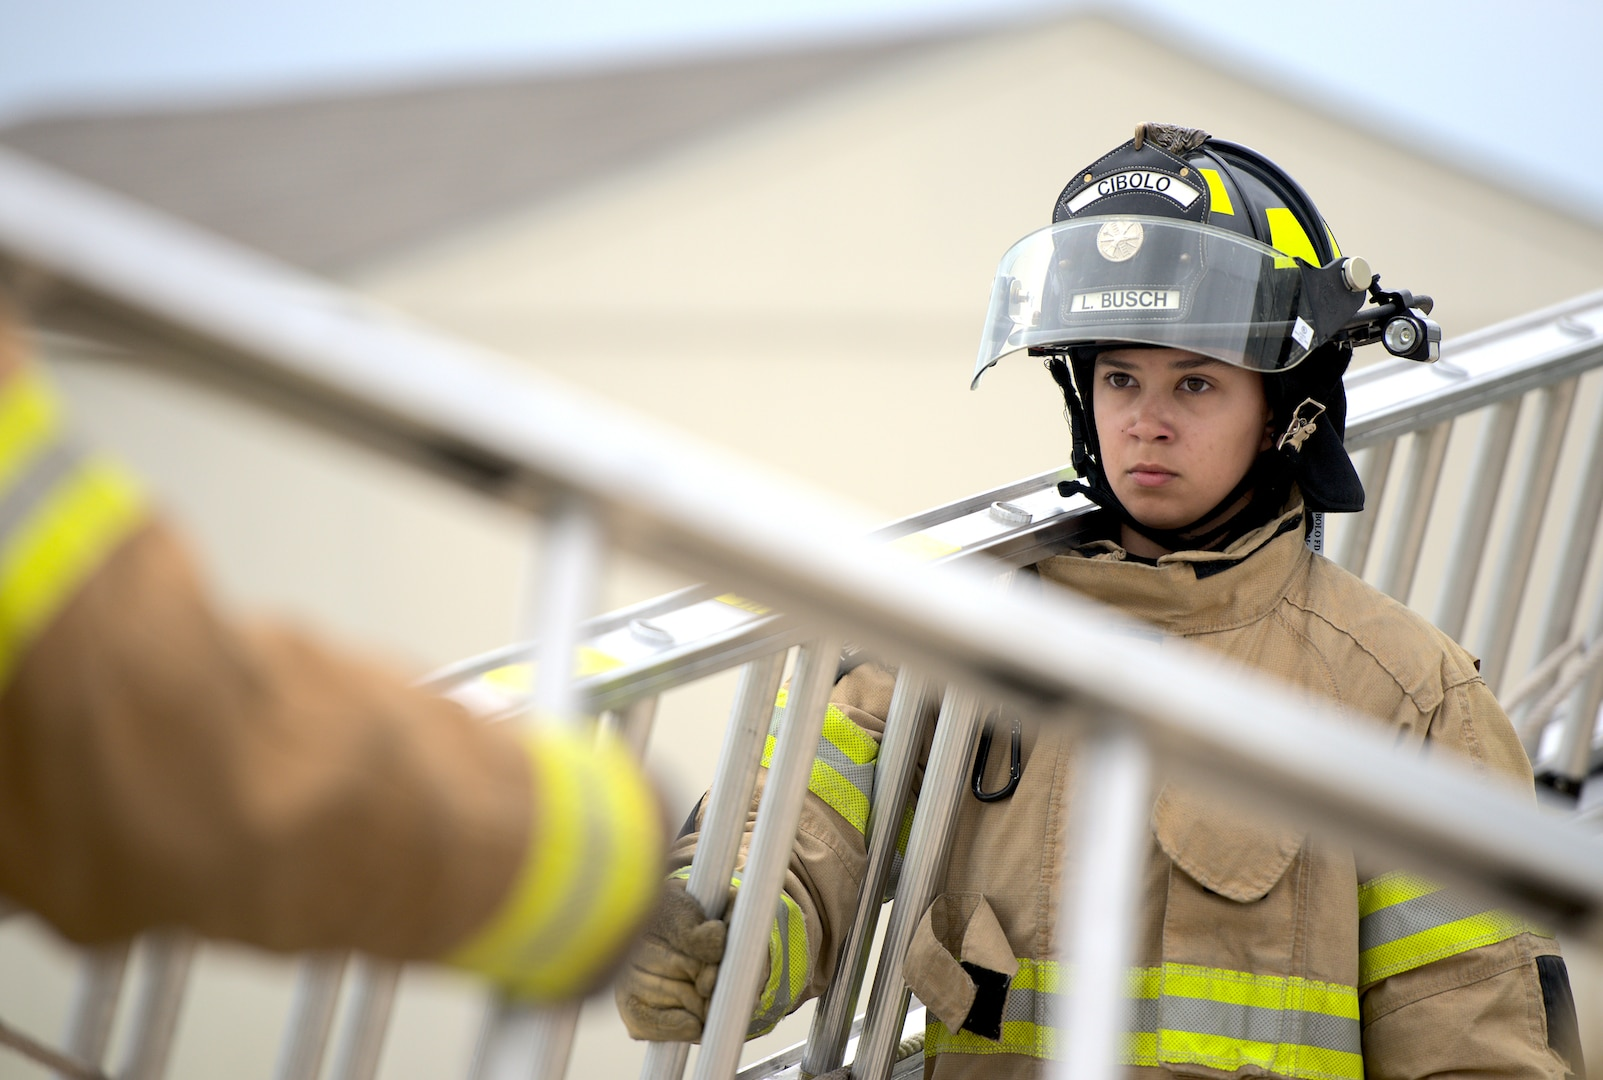 Linda Busch-Mendez, Cibolo Fire Department firefighter, holds a ladder during training at Joint Base San Antonio-Randolph, Texas, April 12, 2021.